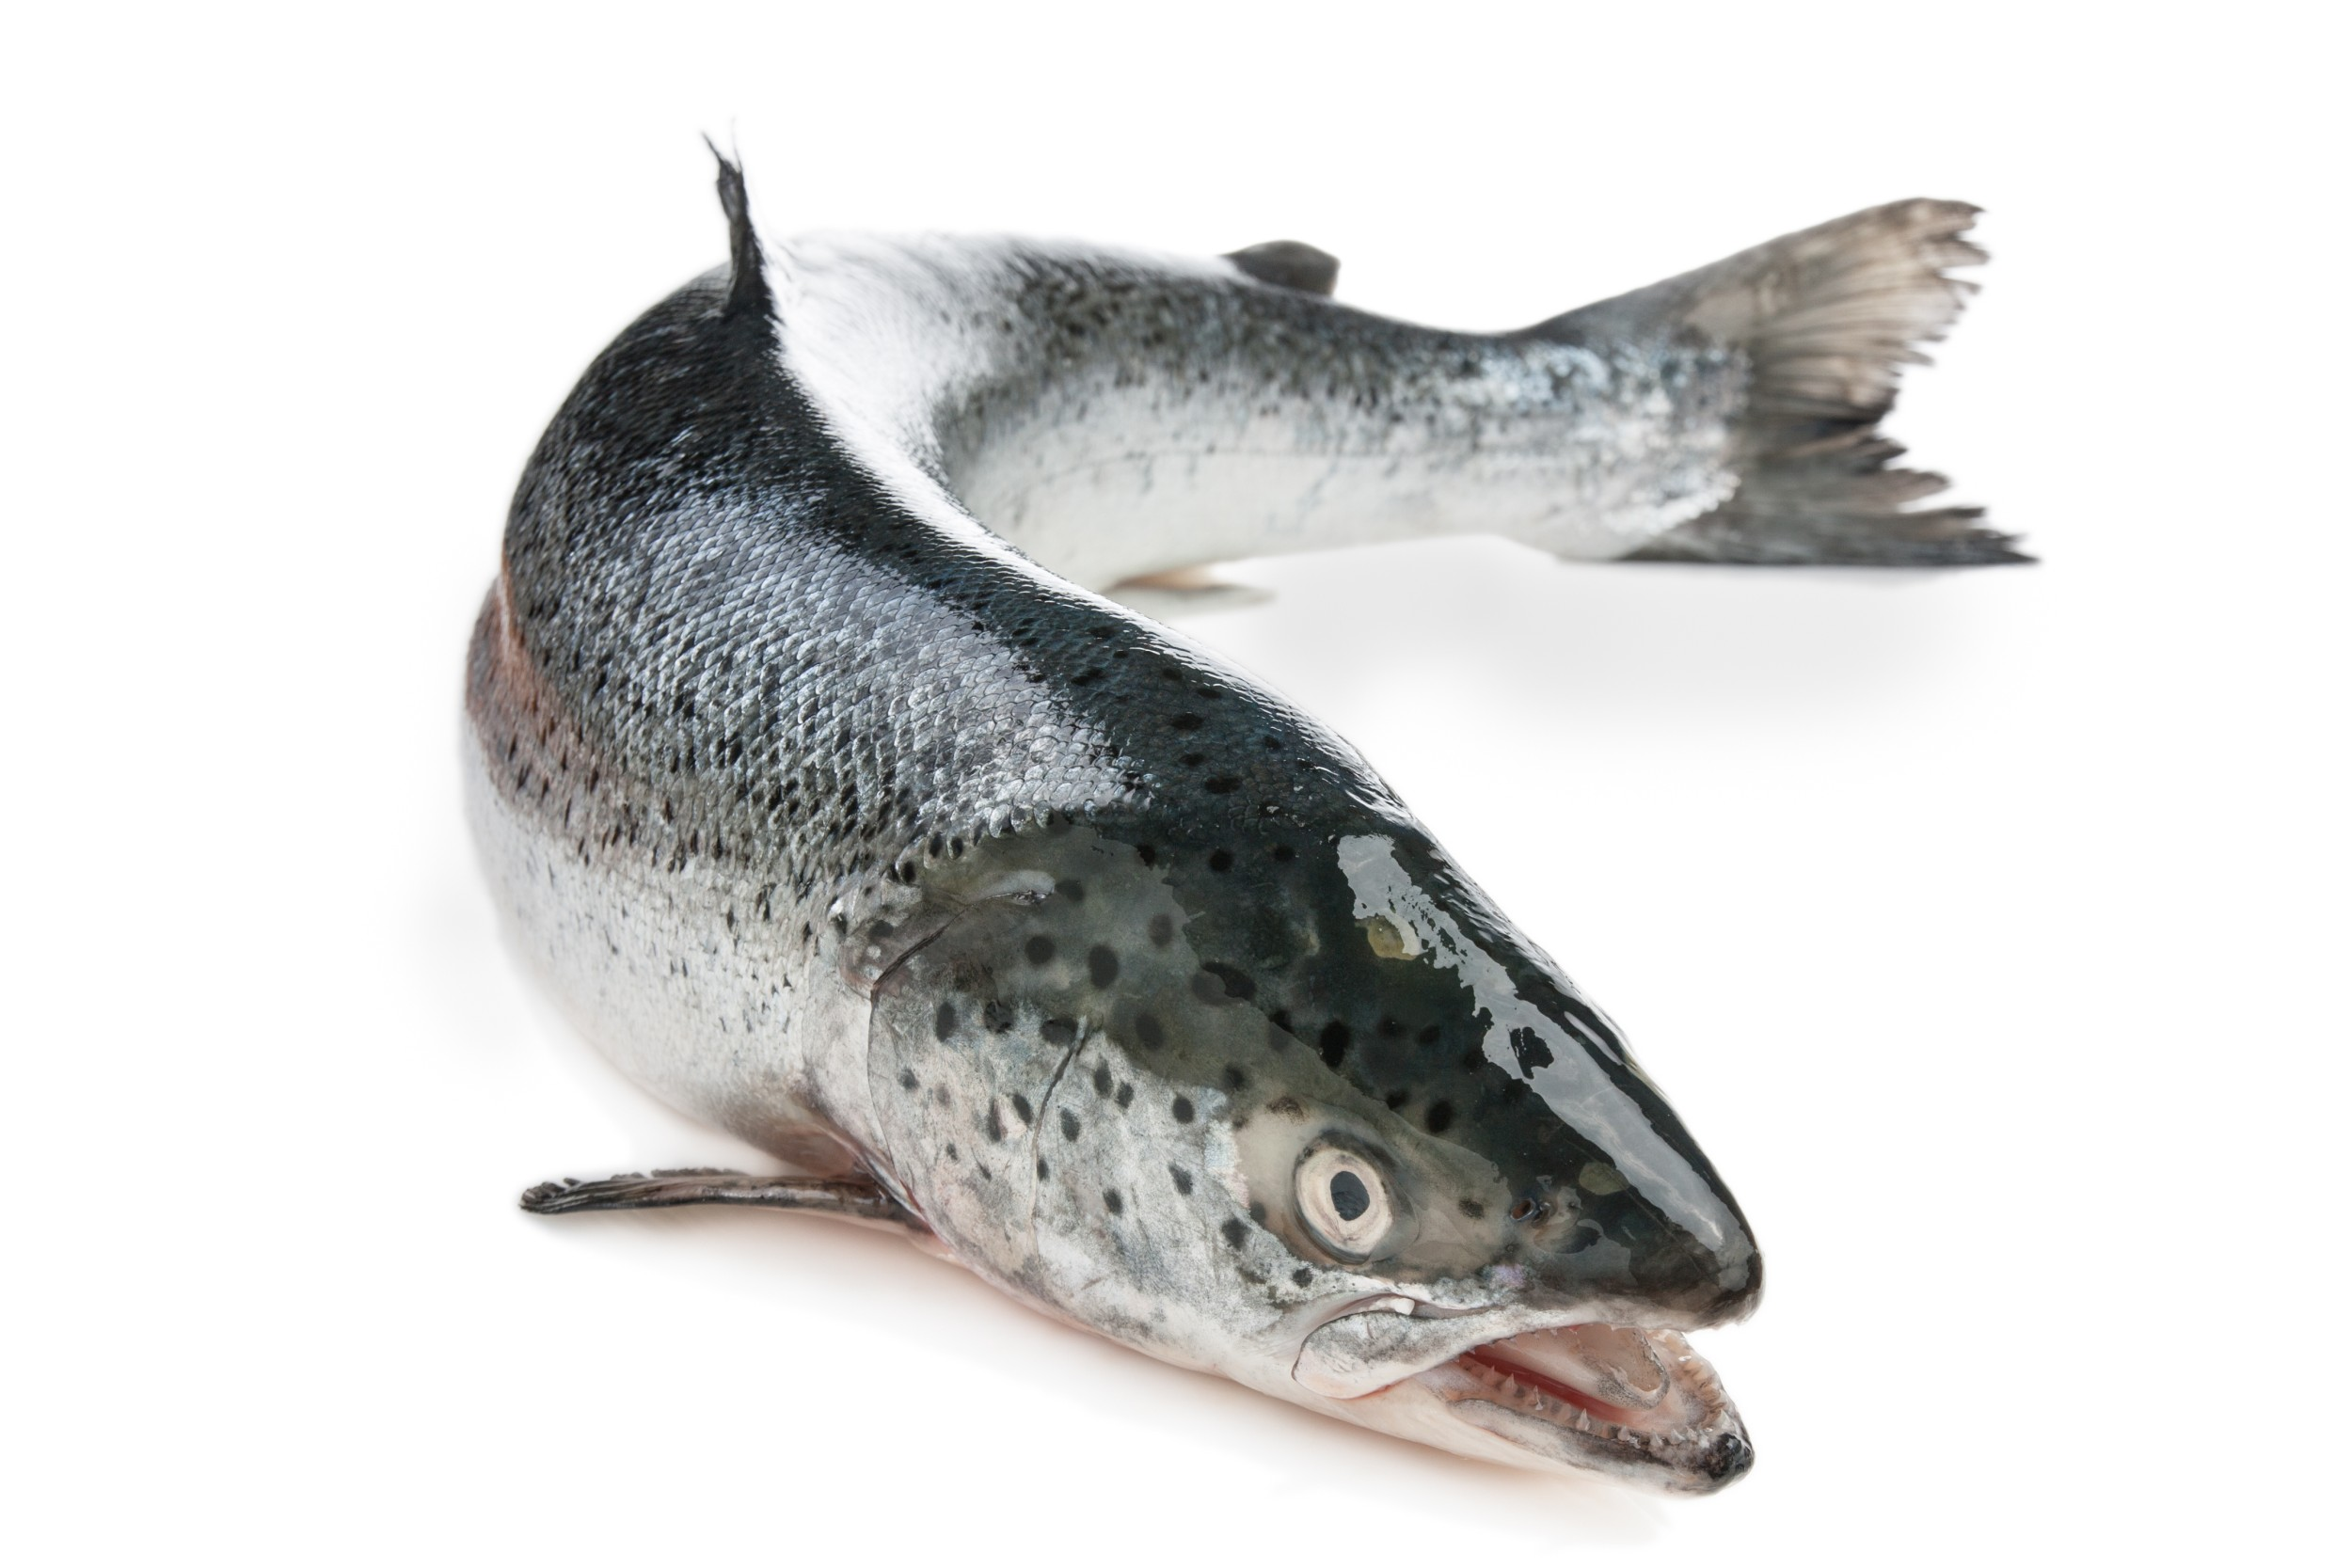 singles in salmon Save at least 10% on all purchases all year it's easy - just sign up to our free monthly newsletter get up to date information on fliesonline promotions and fishing.